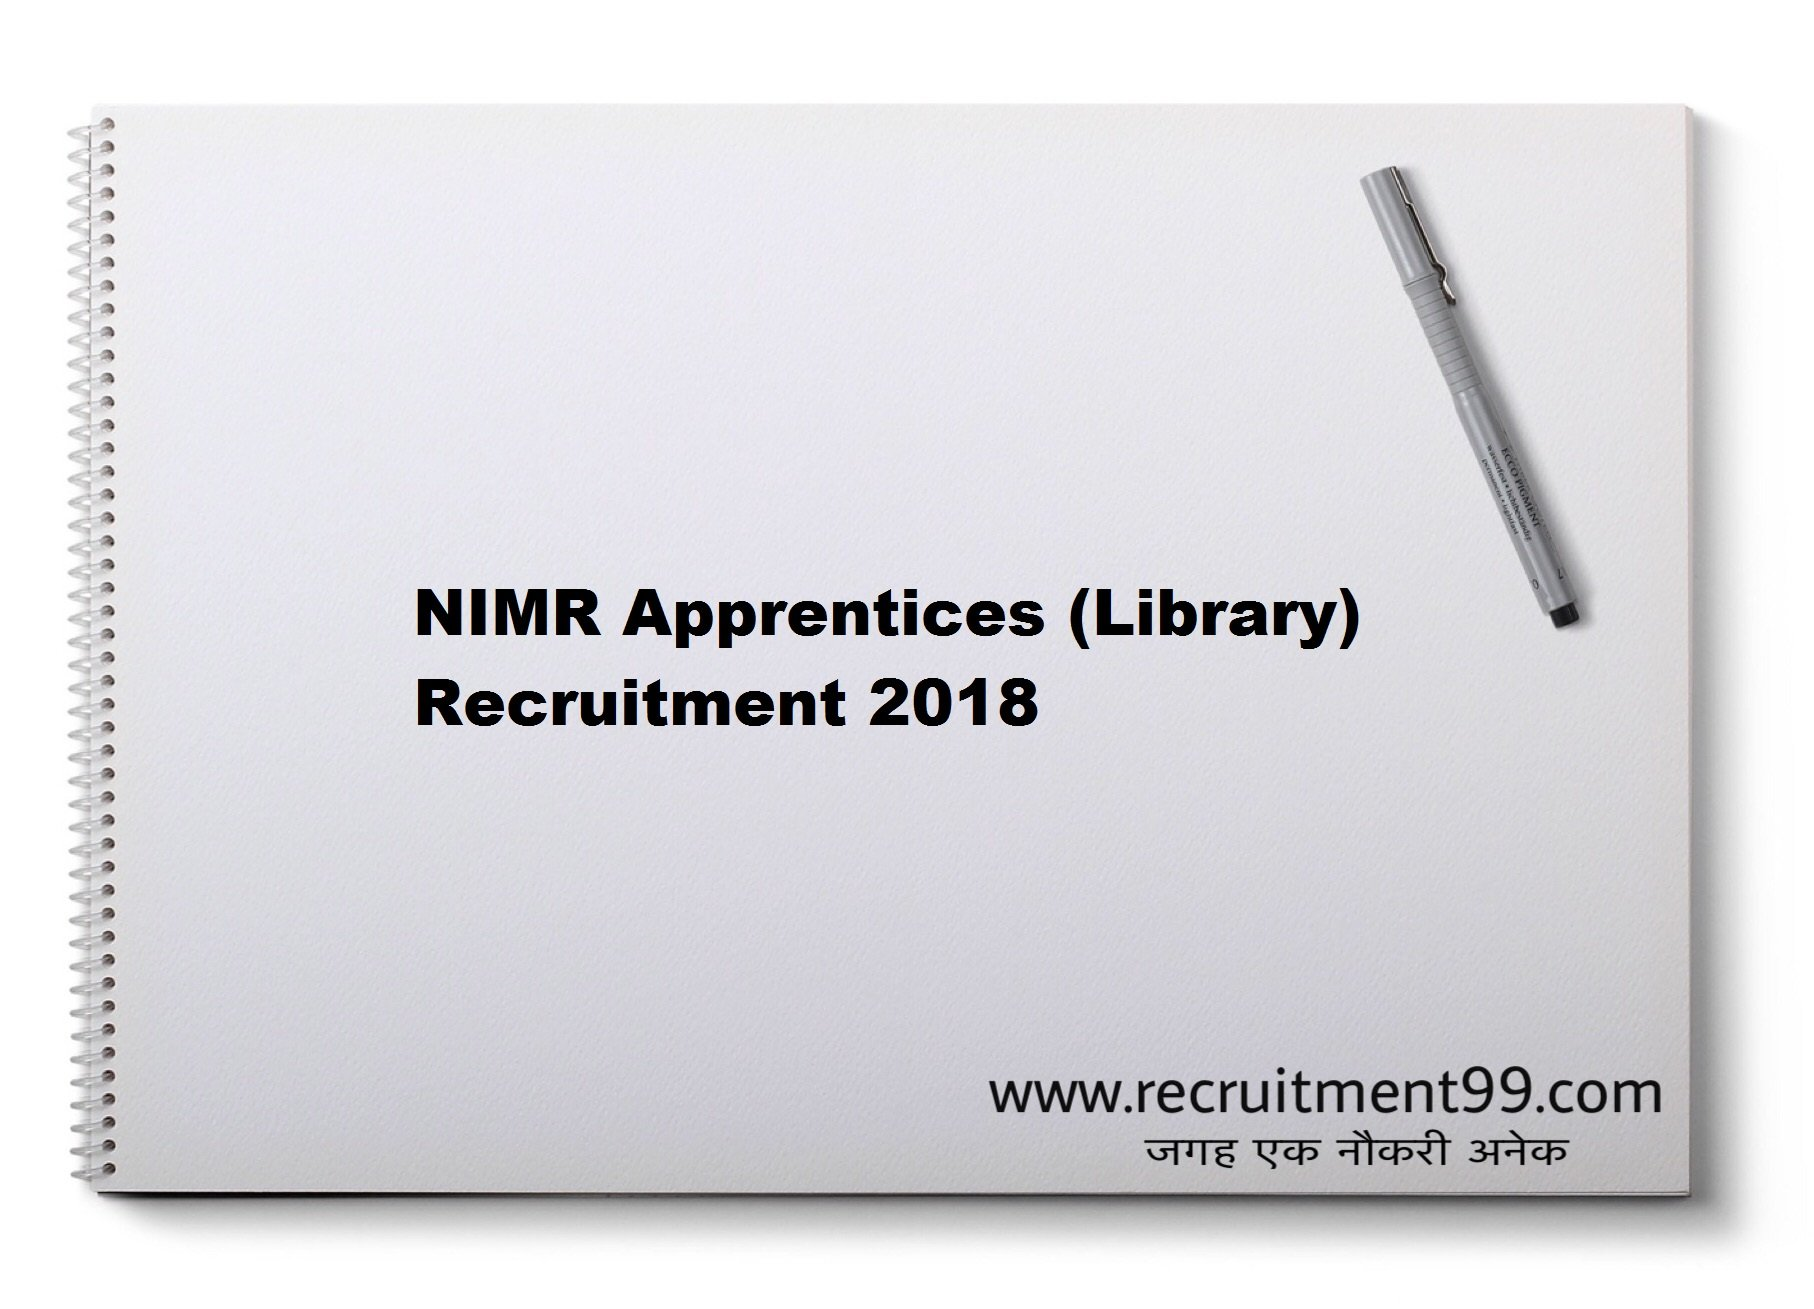 NIMR Apprentices (Library) Recruitment Admit Card Result 2018